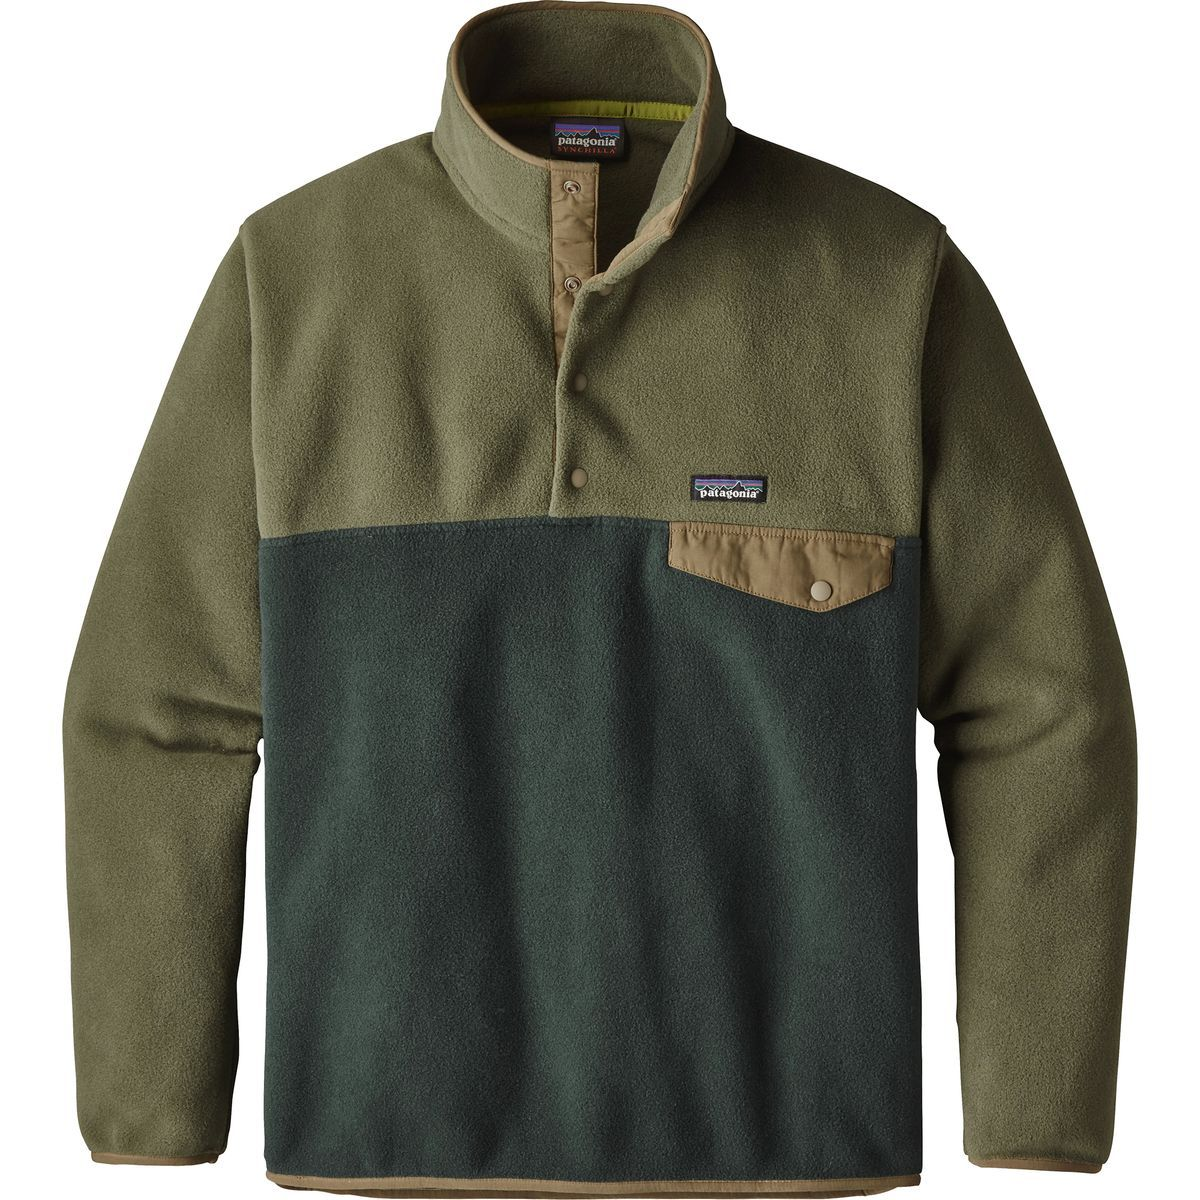 98c7b0d16dc46f Patagonia - Lightweight Synchilla Snap-T Fleece Pullover- Men s - Industrial  Green